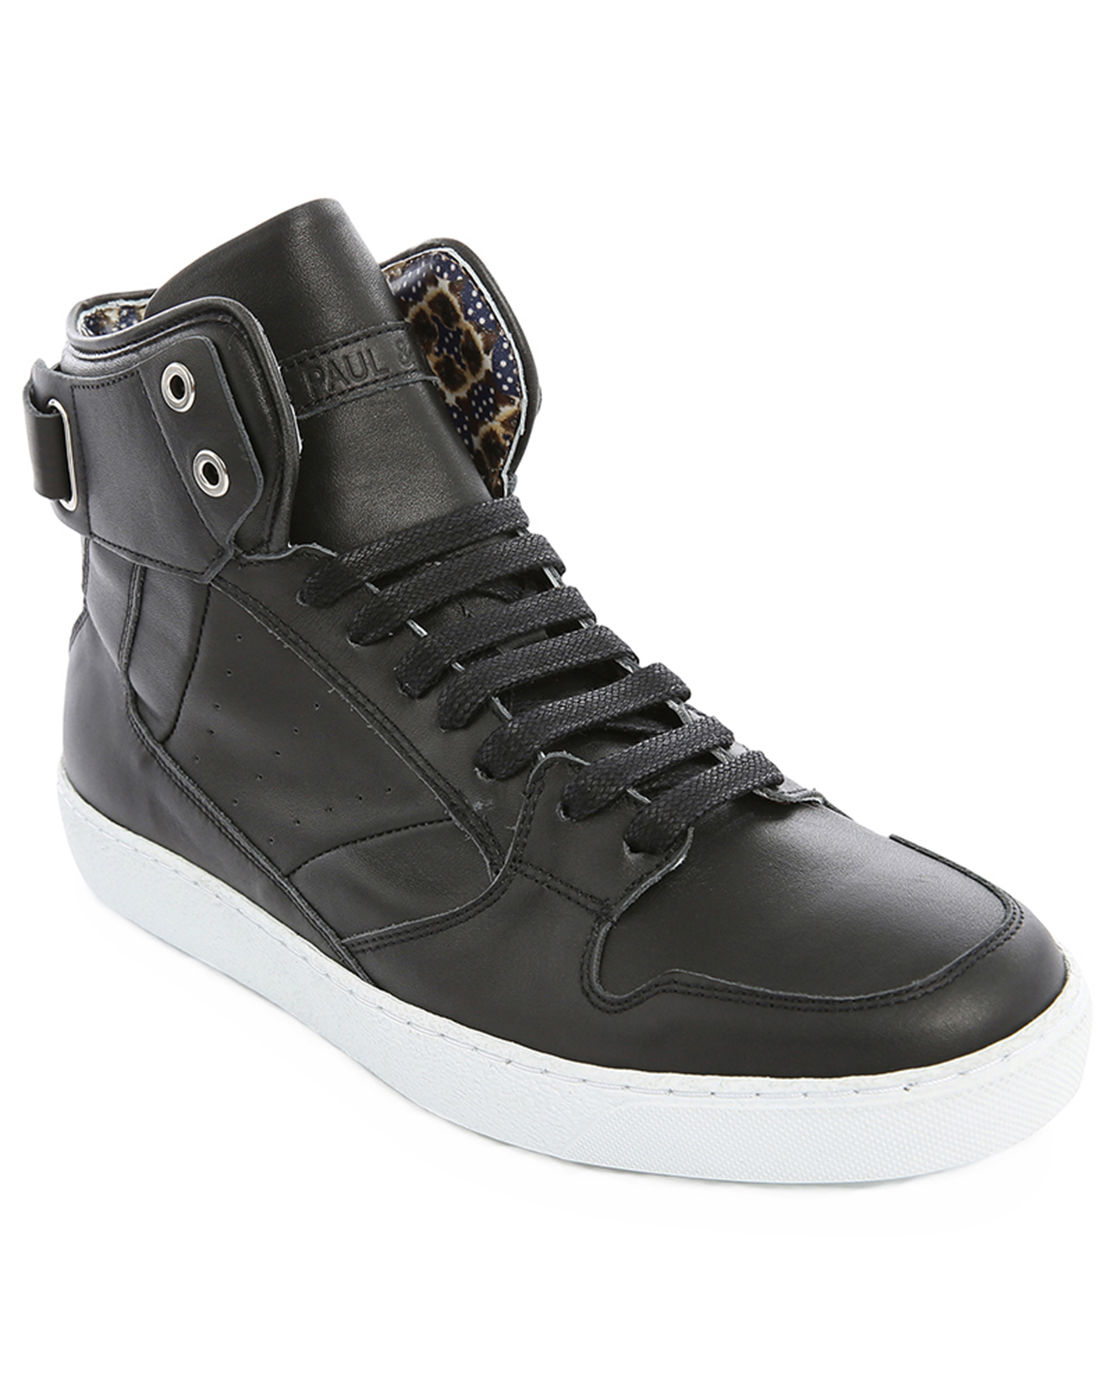 Discover the latest styles of men's high top shoes for less from your favorite brands at Famous Footwear! Find your fit today! Women. View All. New Arrivals. Athletic Shoes. Sandals. DC Shoes Men's Pure High Top WC TX SE Skate Shoe Black/Black/White. $ DC Shoes Men's Pure High Top WC Skate Shoe White/White.